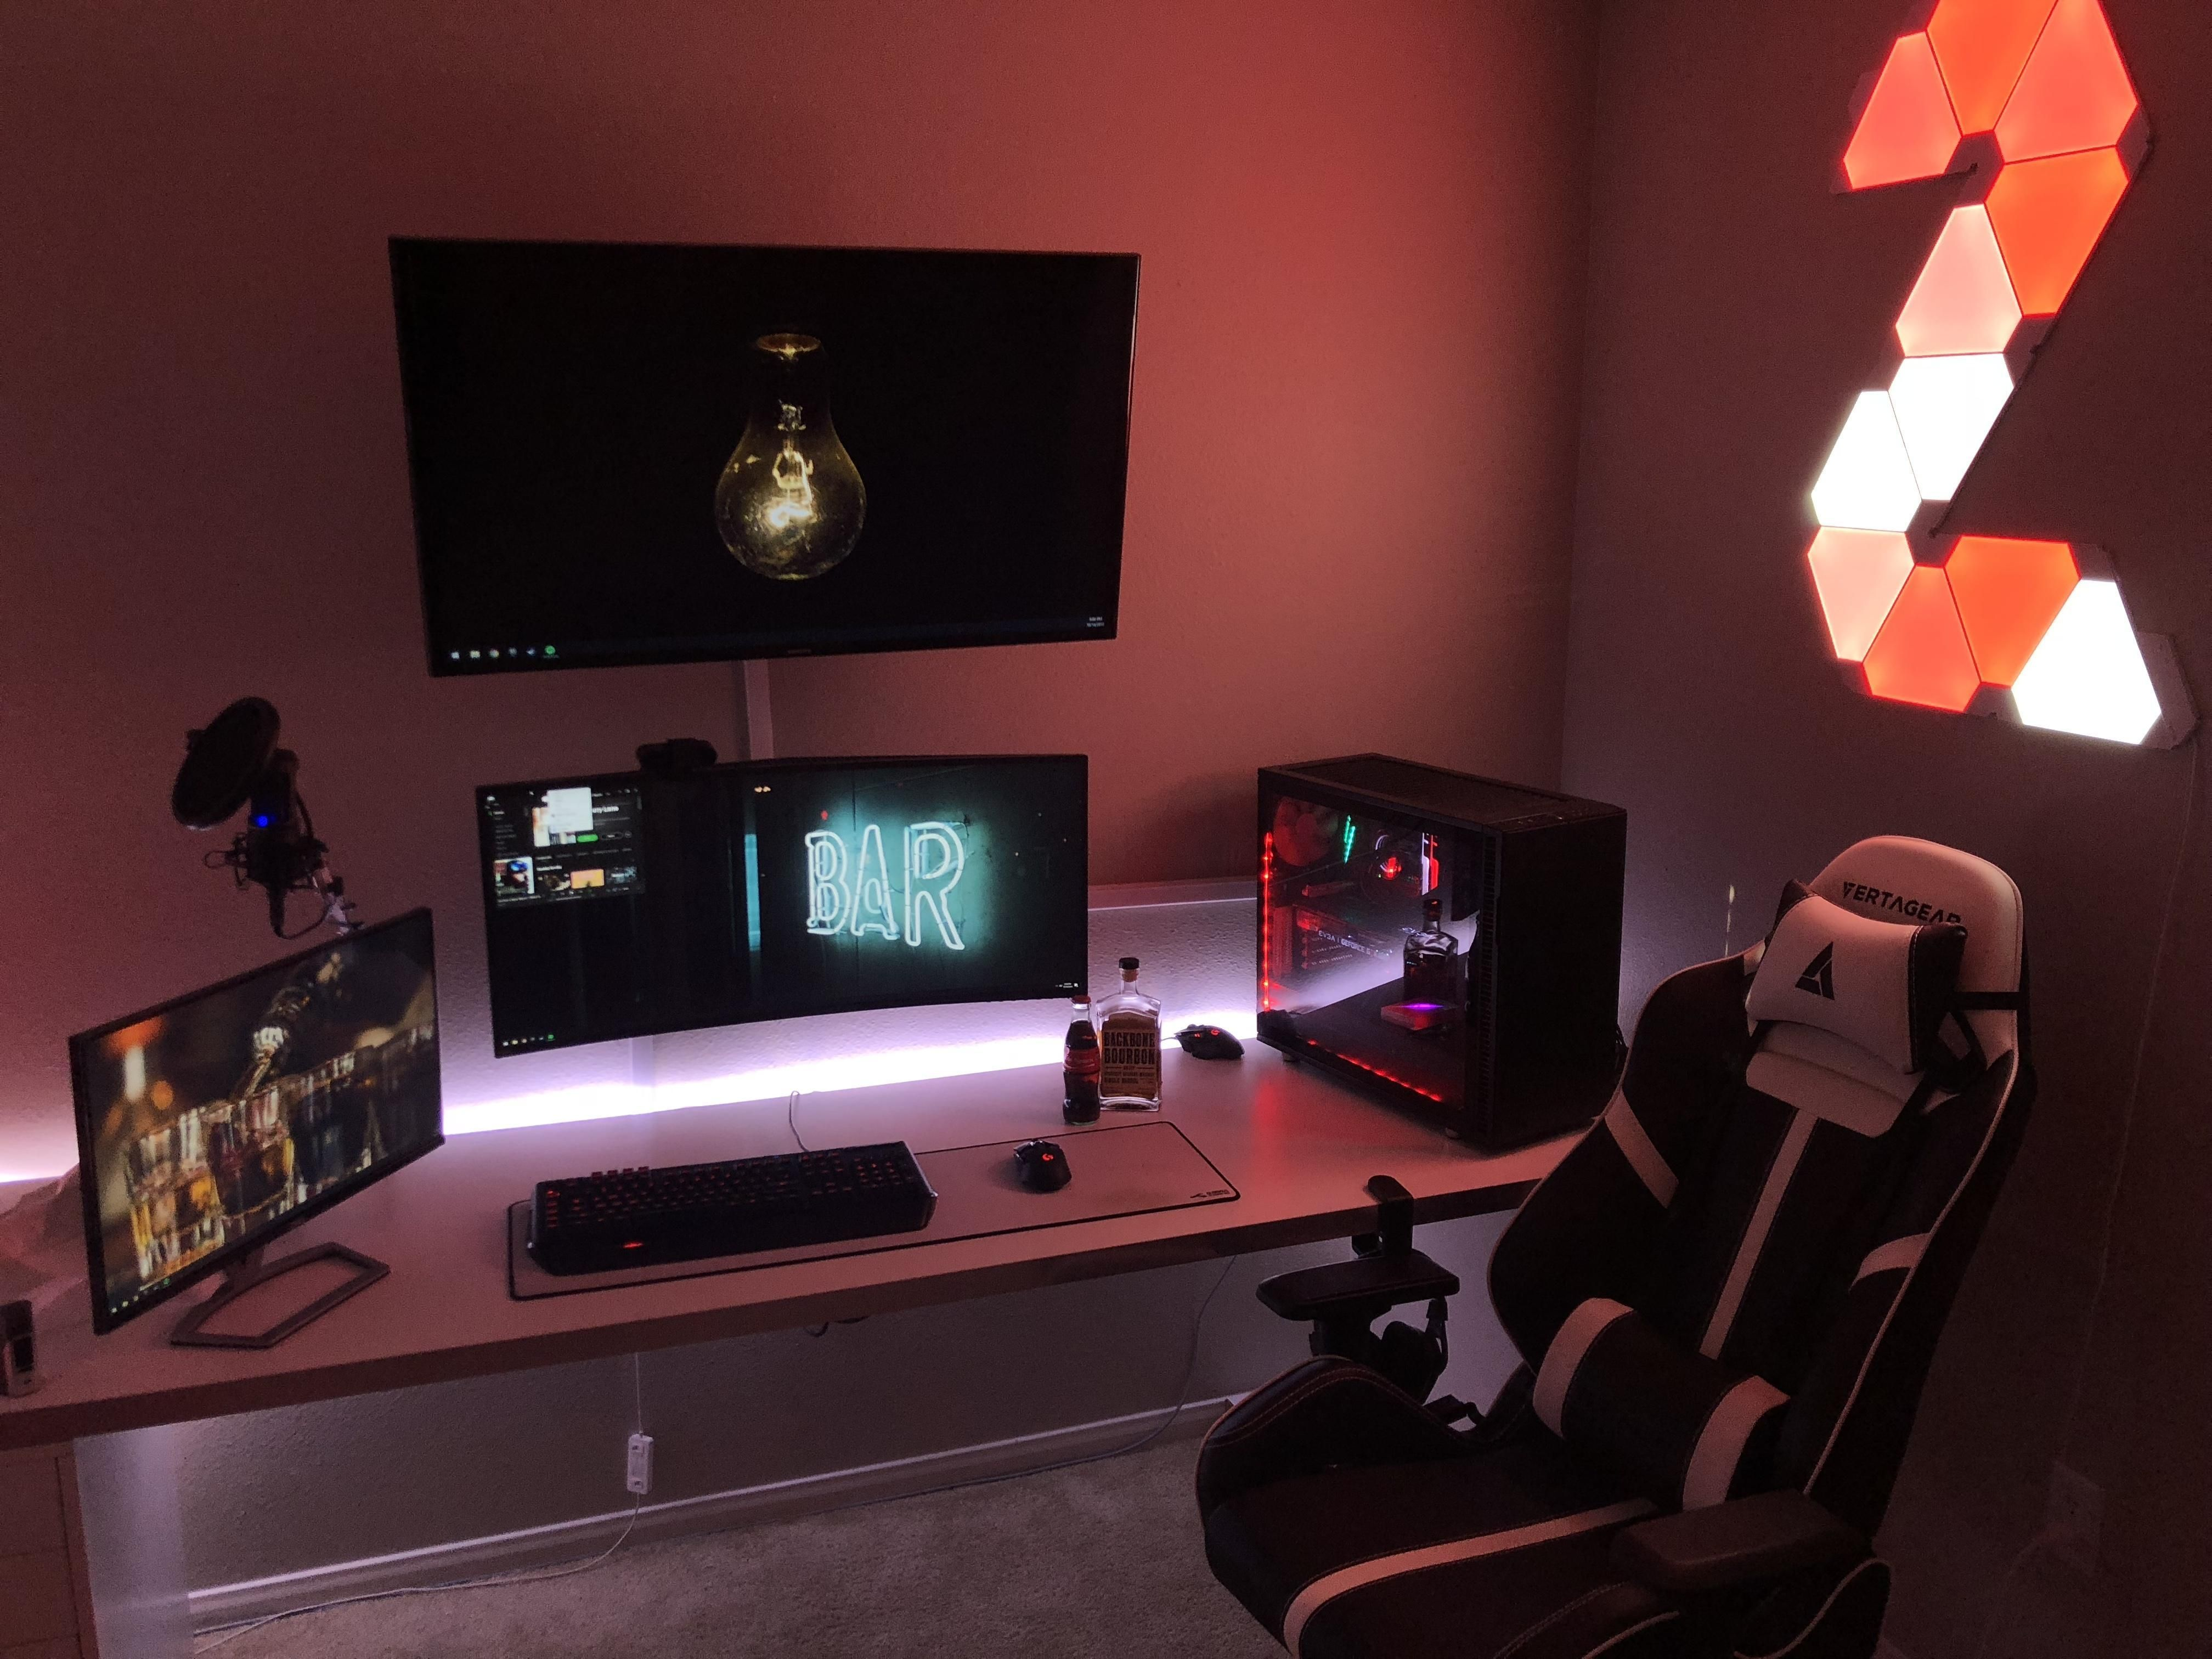 75 Great Ideas To Decorate Your Video Games Room Ideen Furs